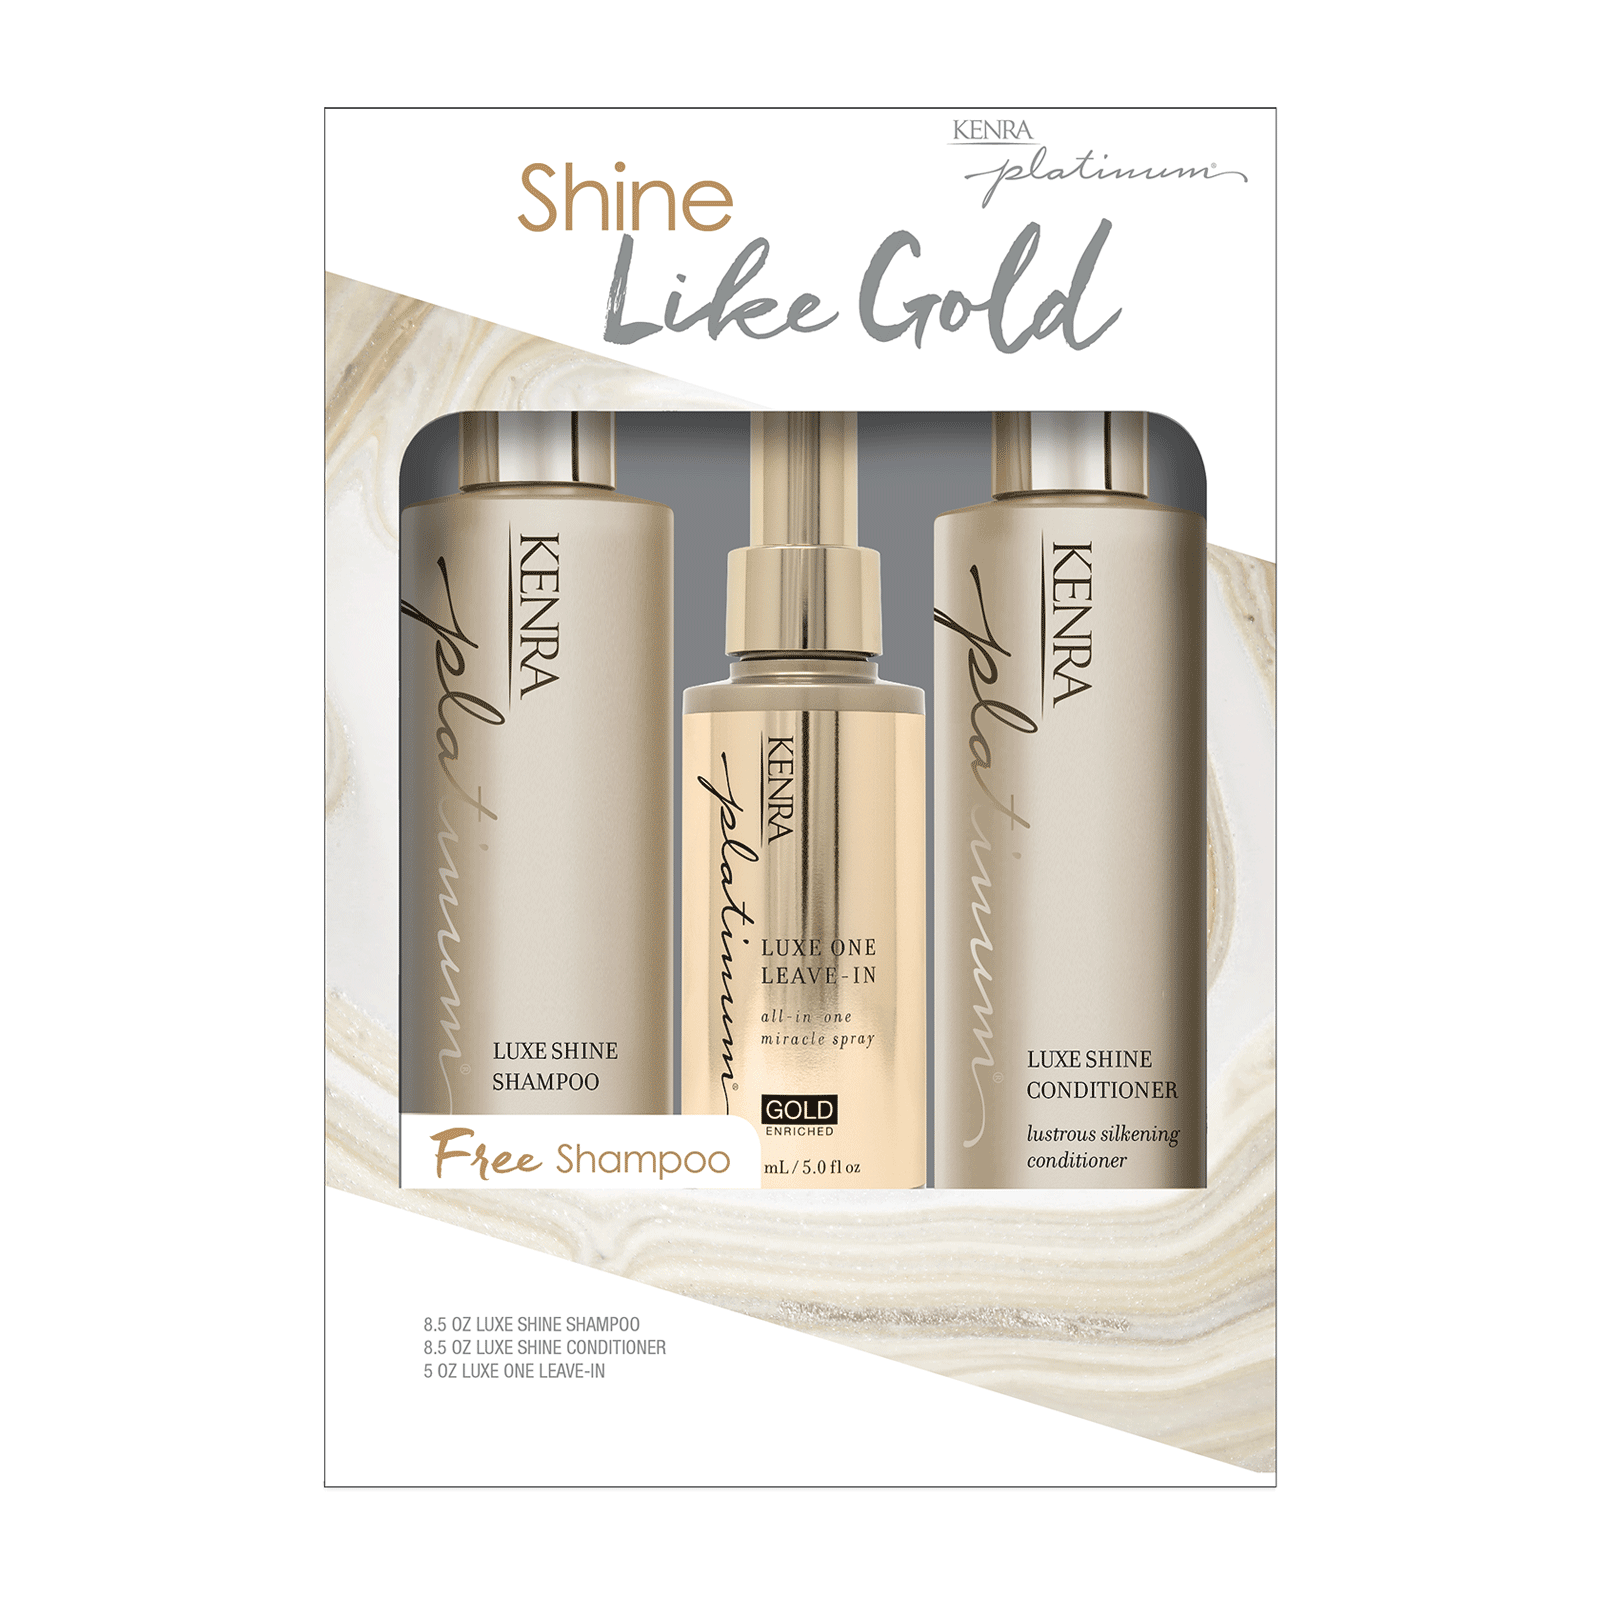 Luxe Shine Shampoo, Conditioner, Leave-In Spray